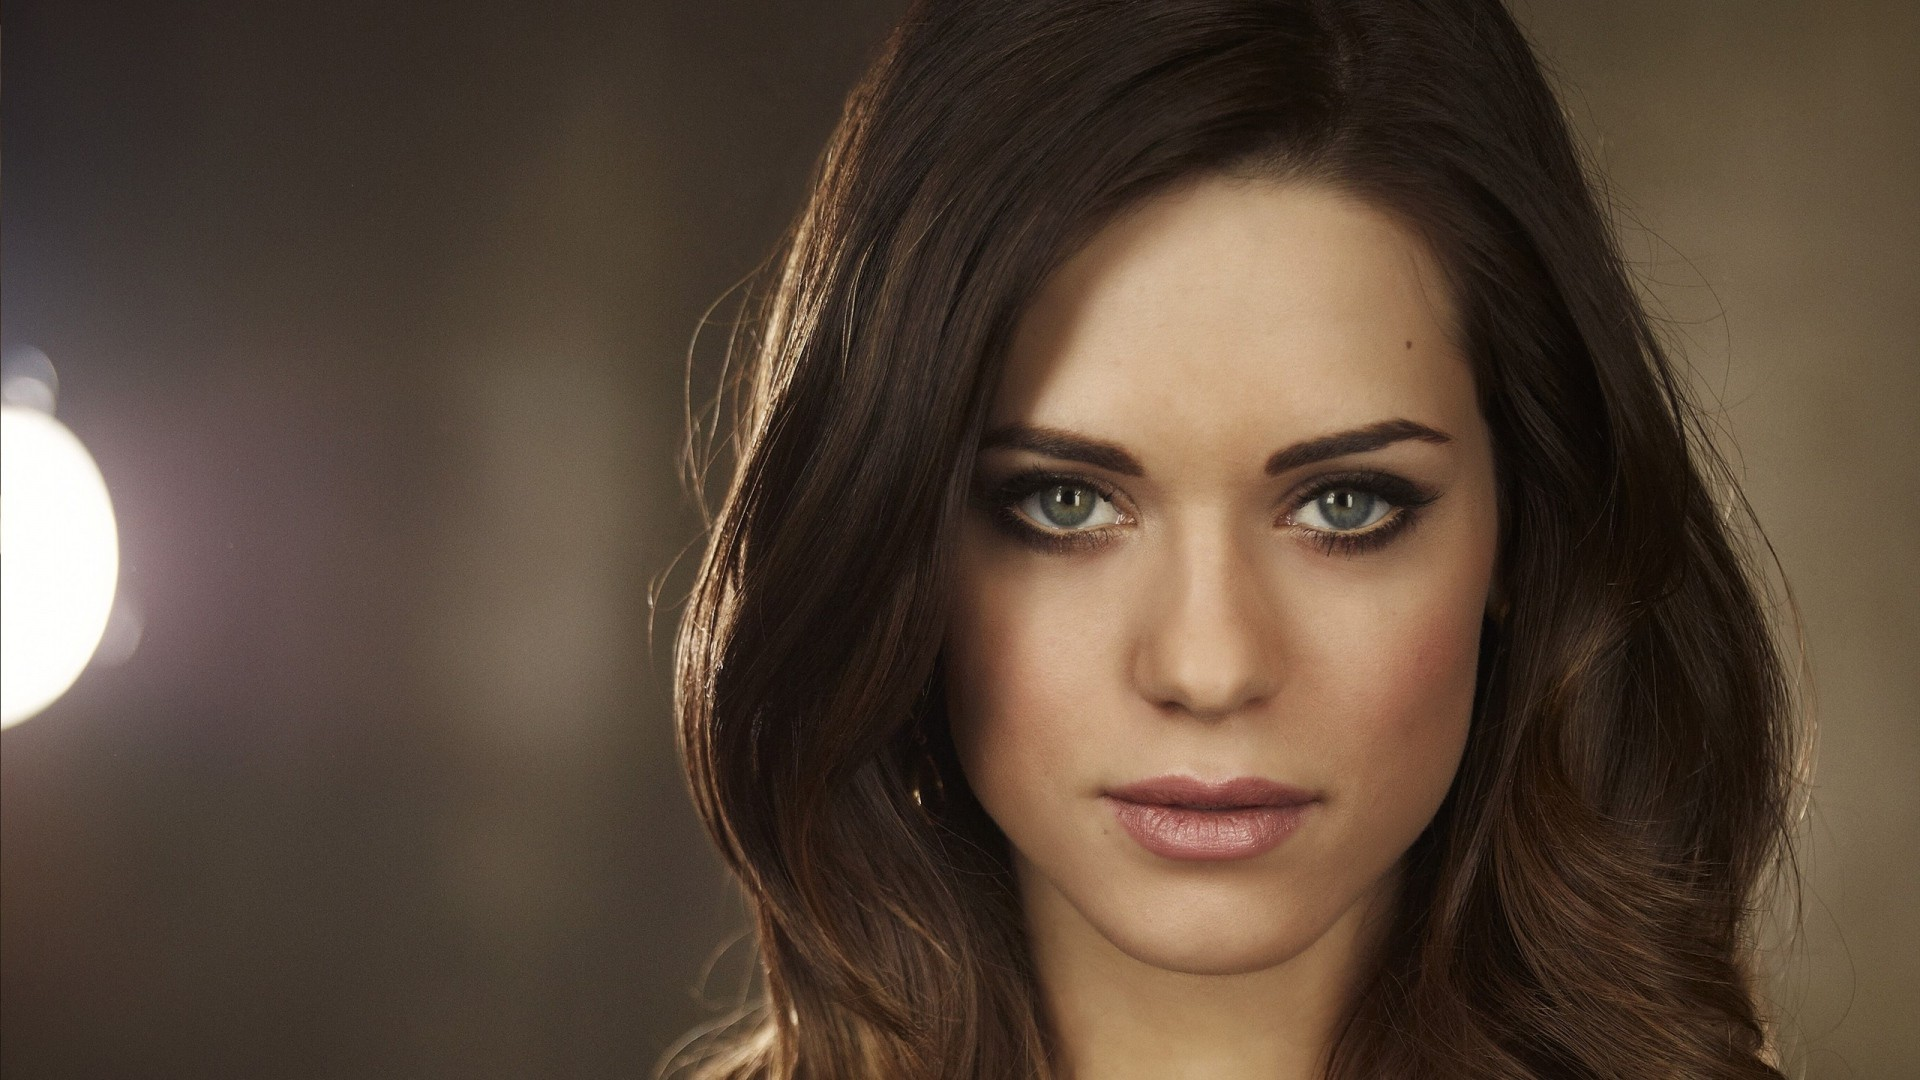 Lyndsy Fonseca Wallpapers Images Photos Pictures Backgrounds